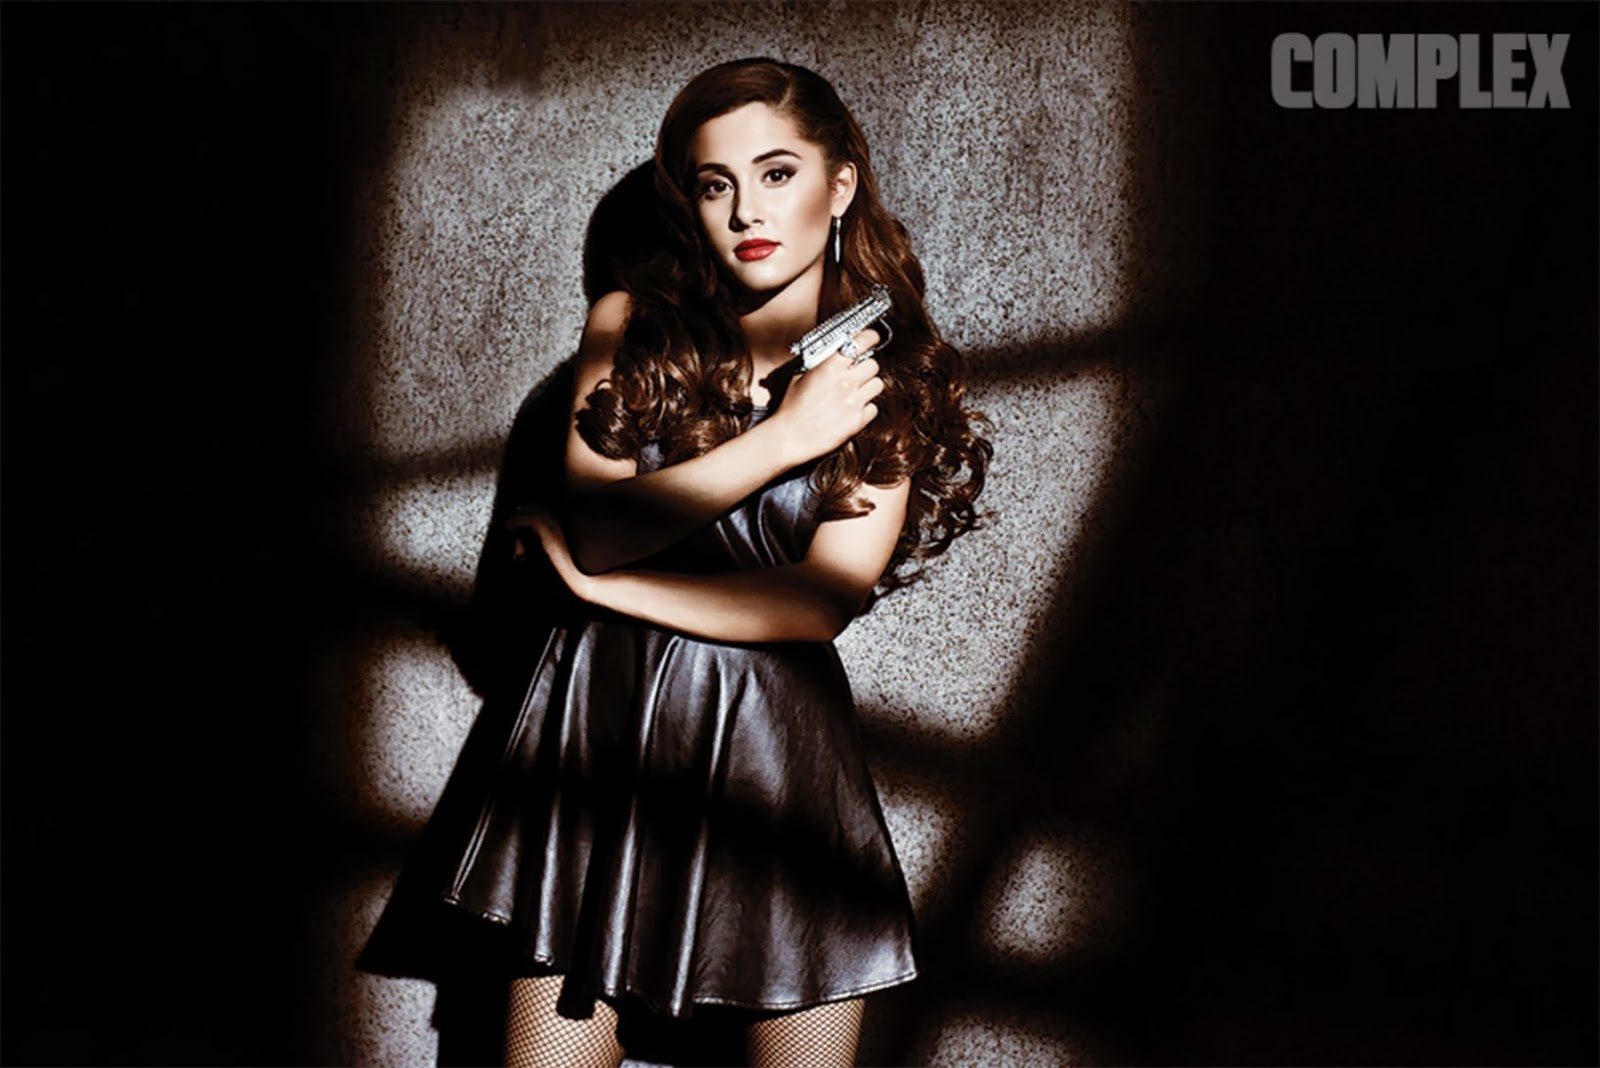 Hq celebrity pictures photoshoot